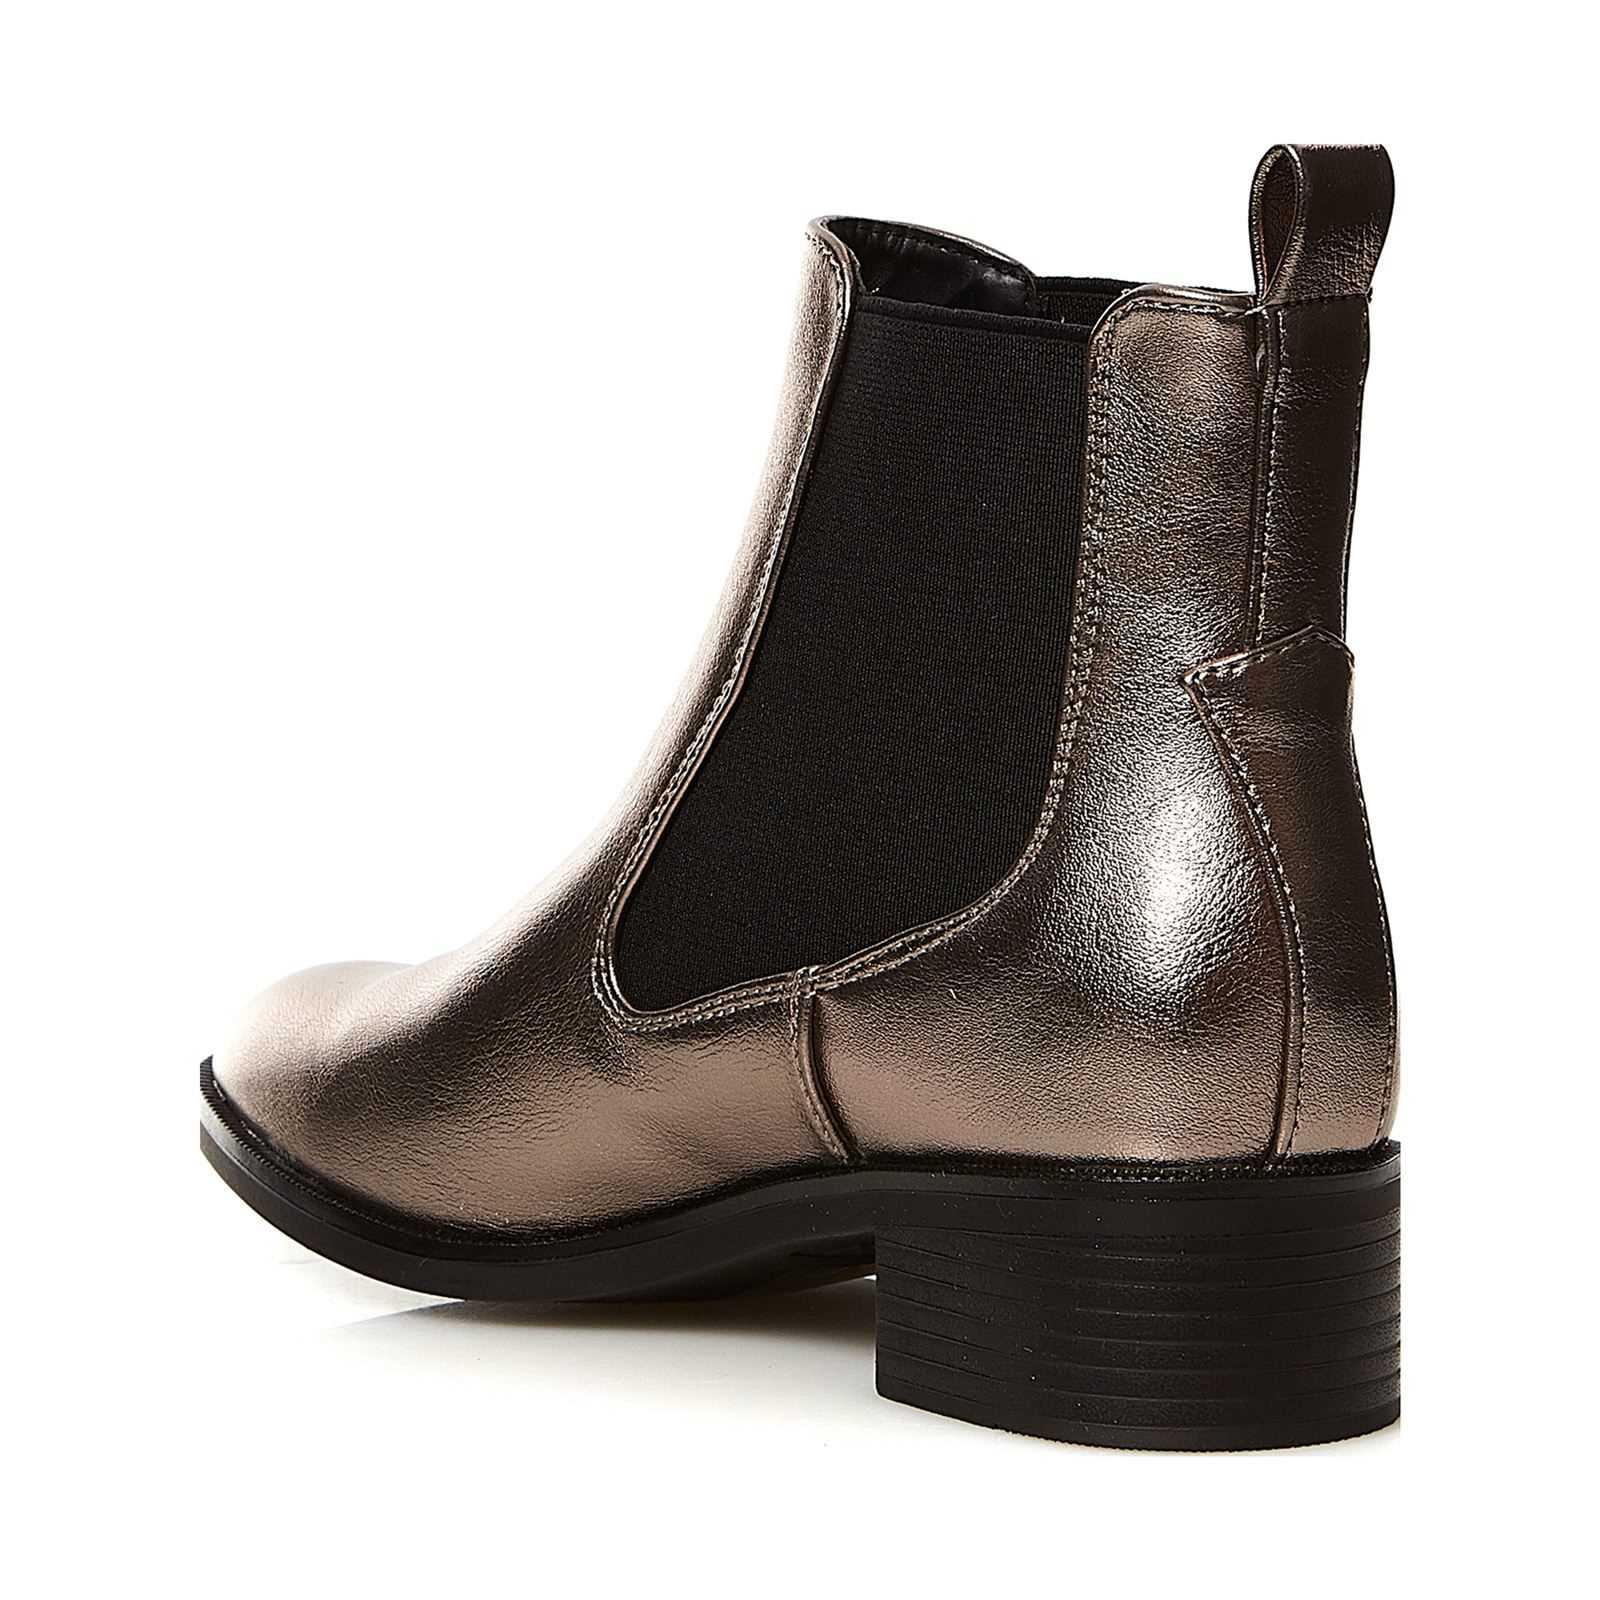 Boots Argent Boots Boots Only Only Only Brandalley Brandalley Argent Boots Brandalley Argent Only Uq8T4q